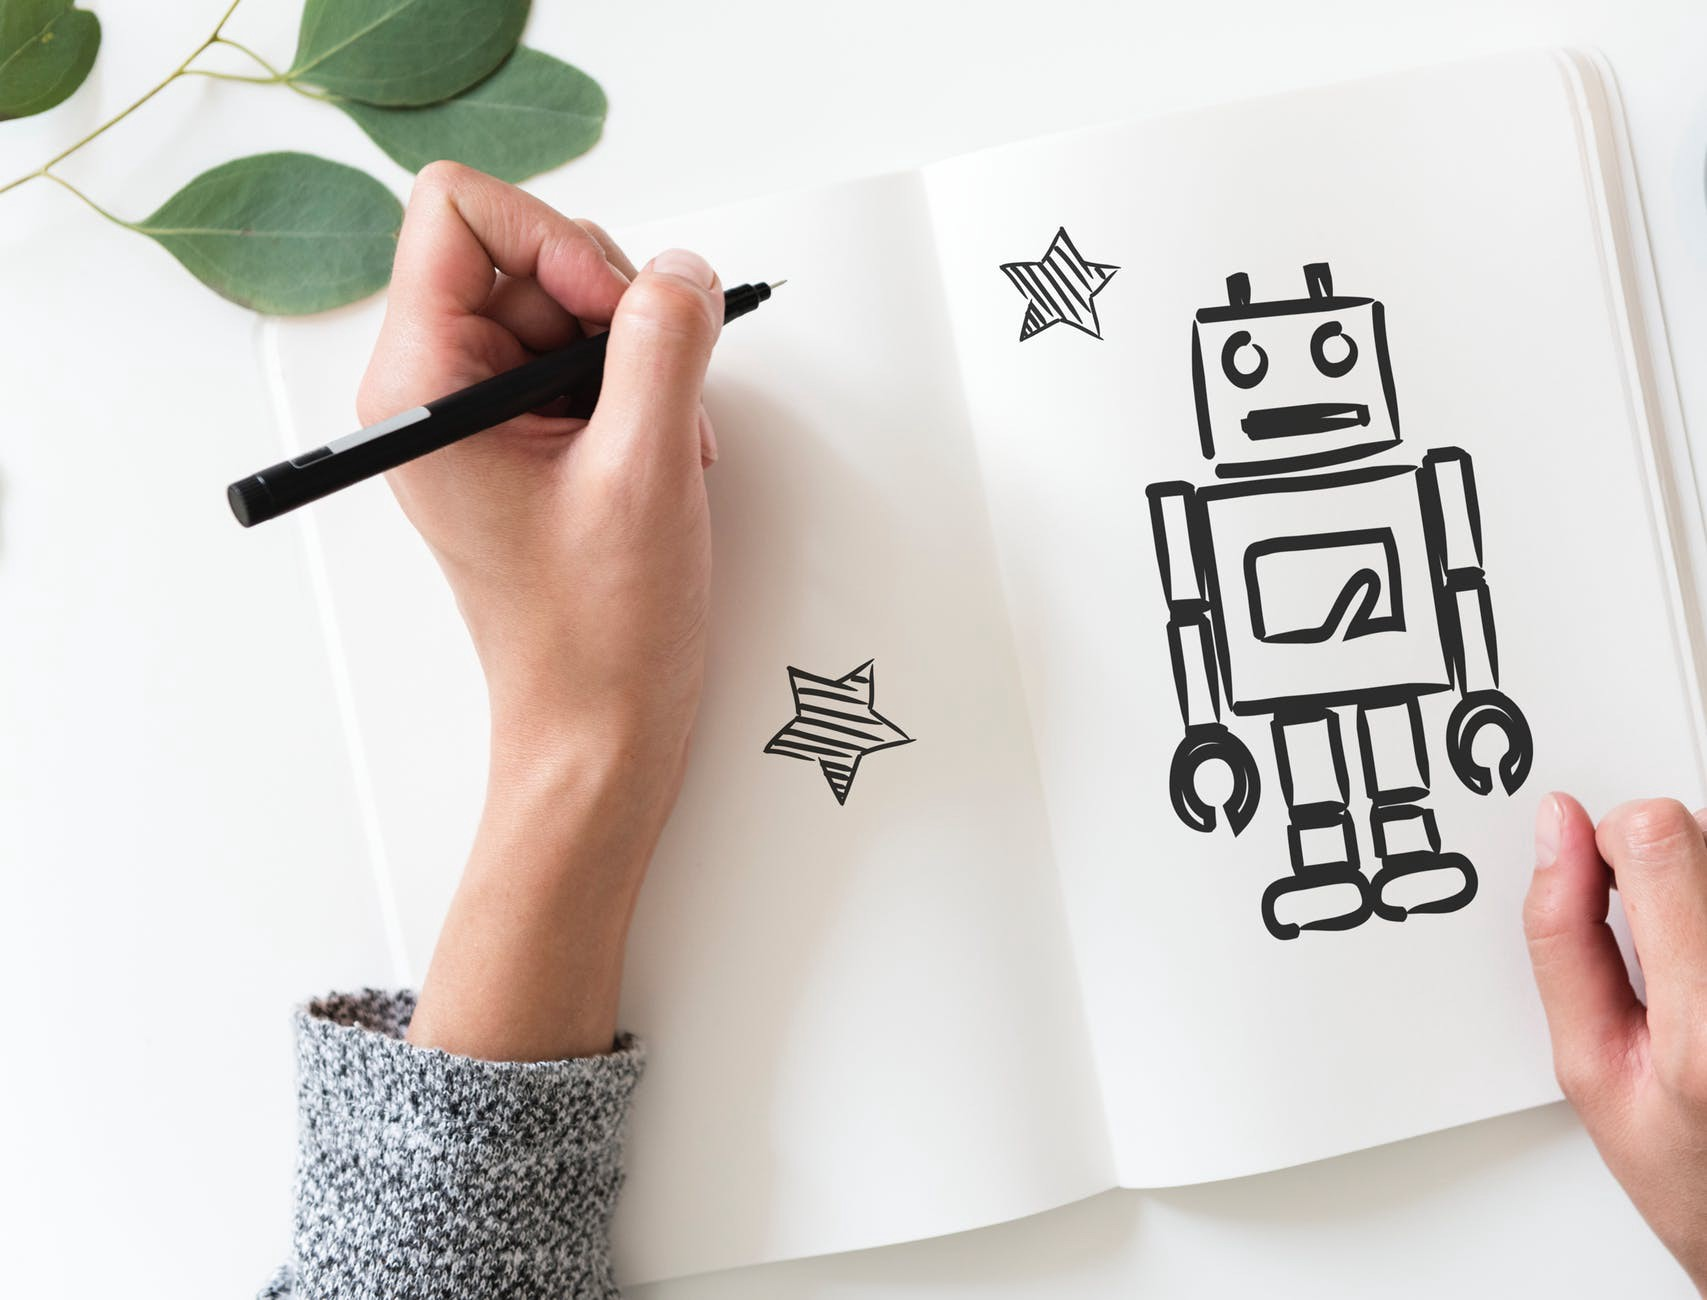 Seven steps to build an Effective Operating Model for RPA